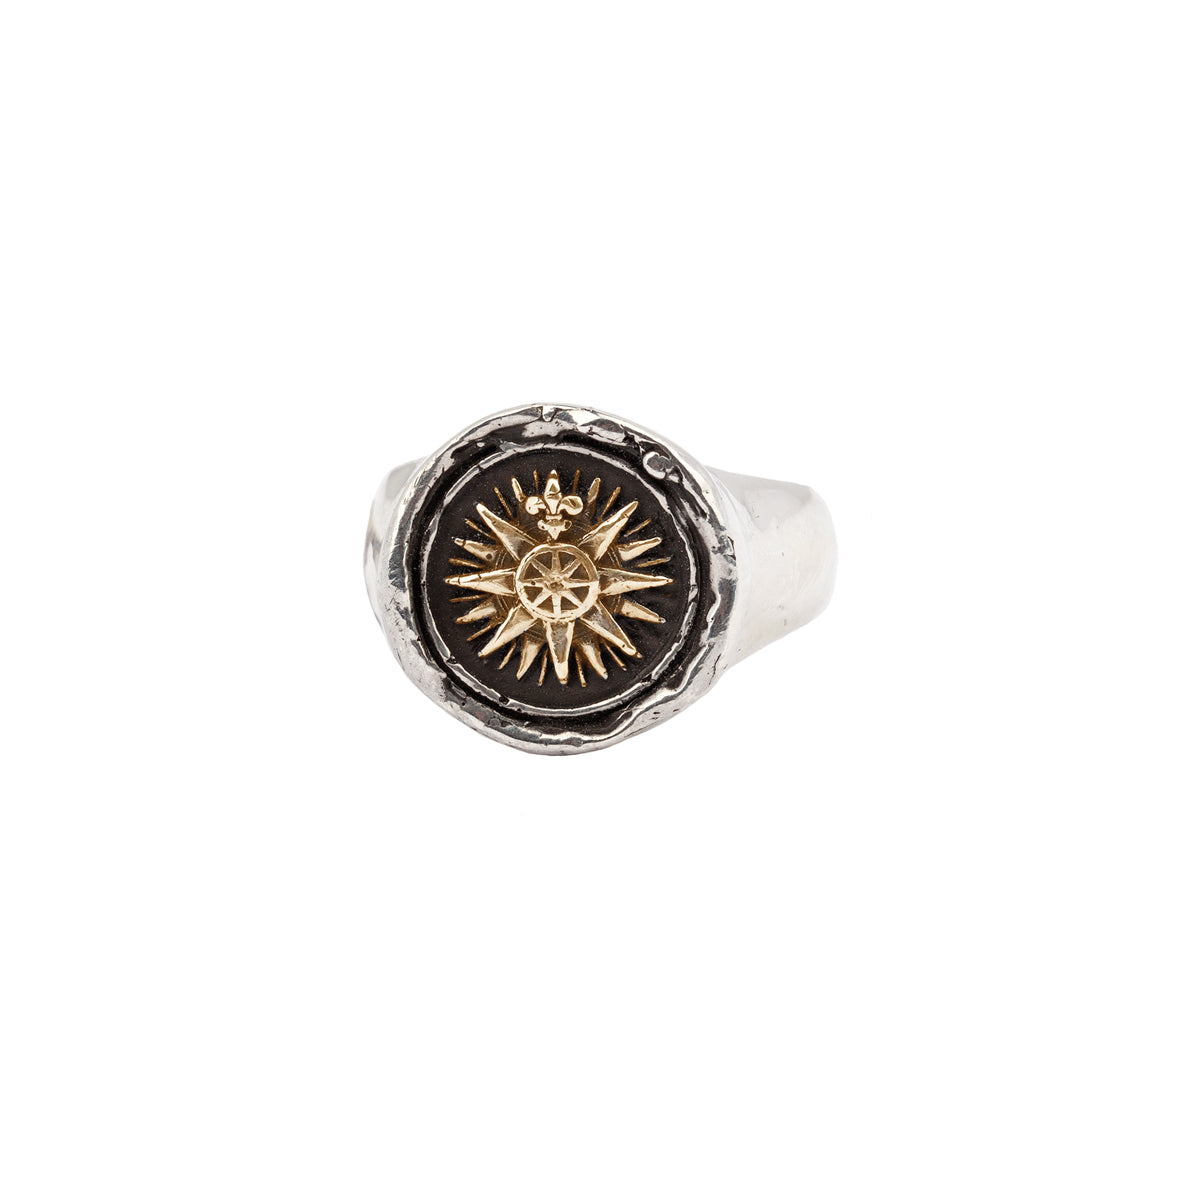 Direction 14k gold on silver signet ring - Pyrrha - 1